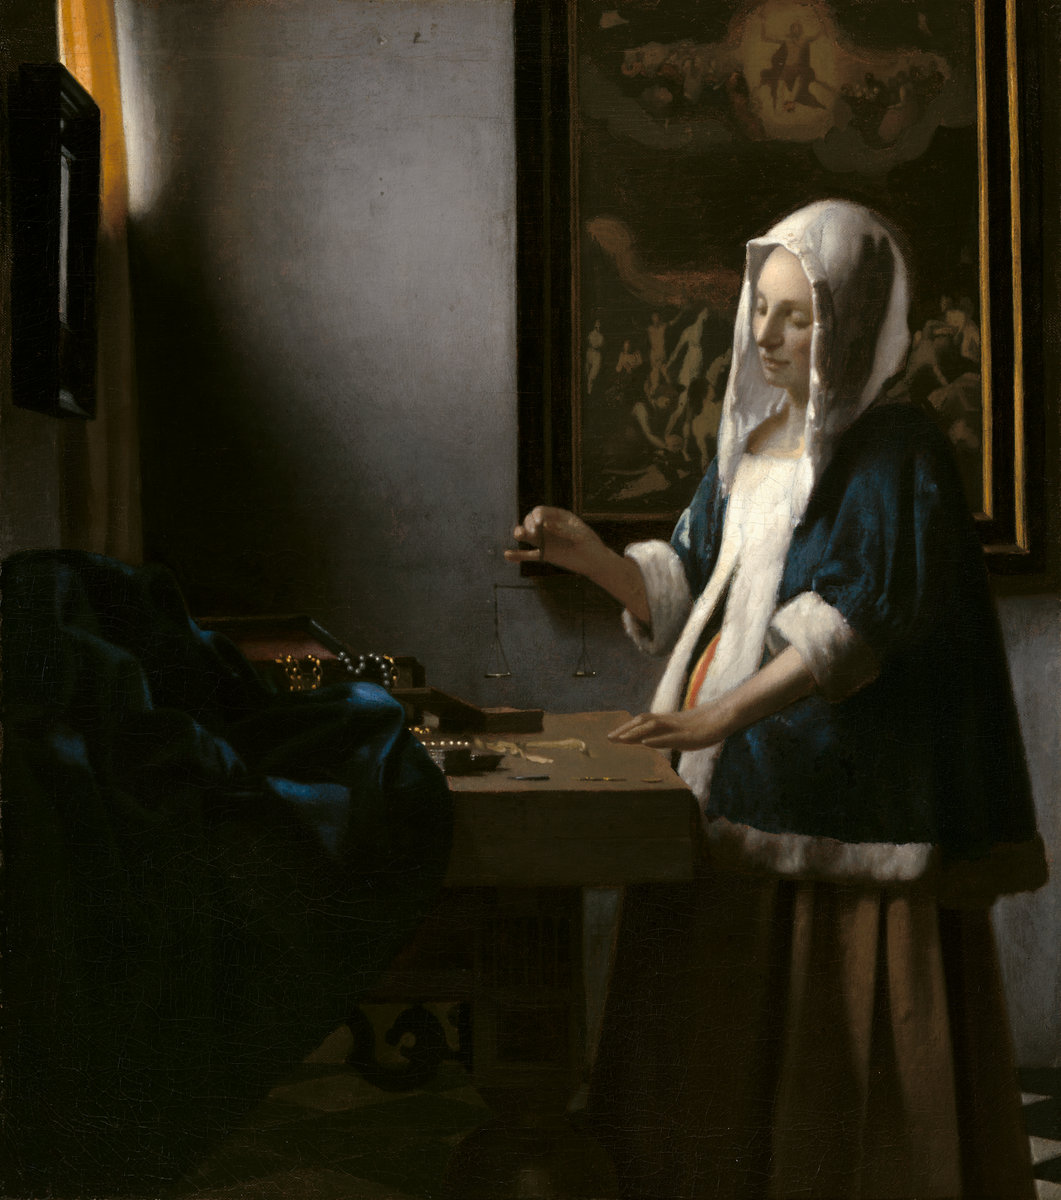 Johannes Vermeer, Woman Holding a Balance, 1662-63. Image: National Gallery of Art, Washington